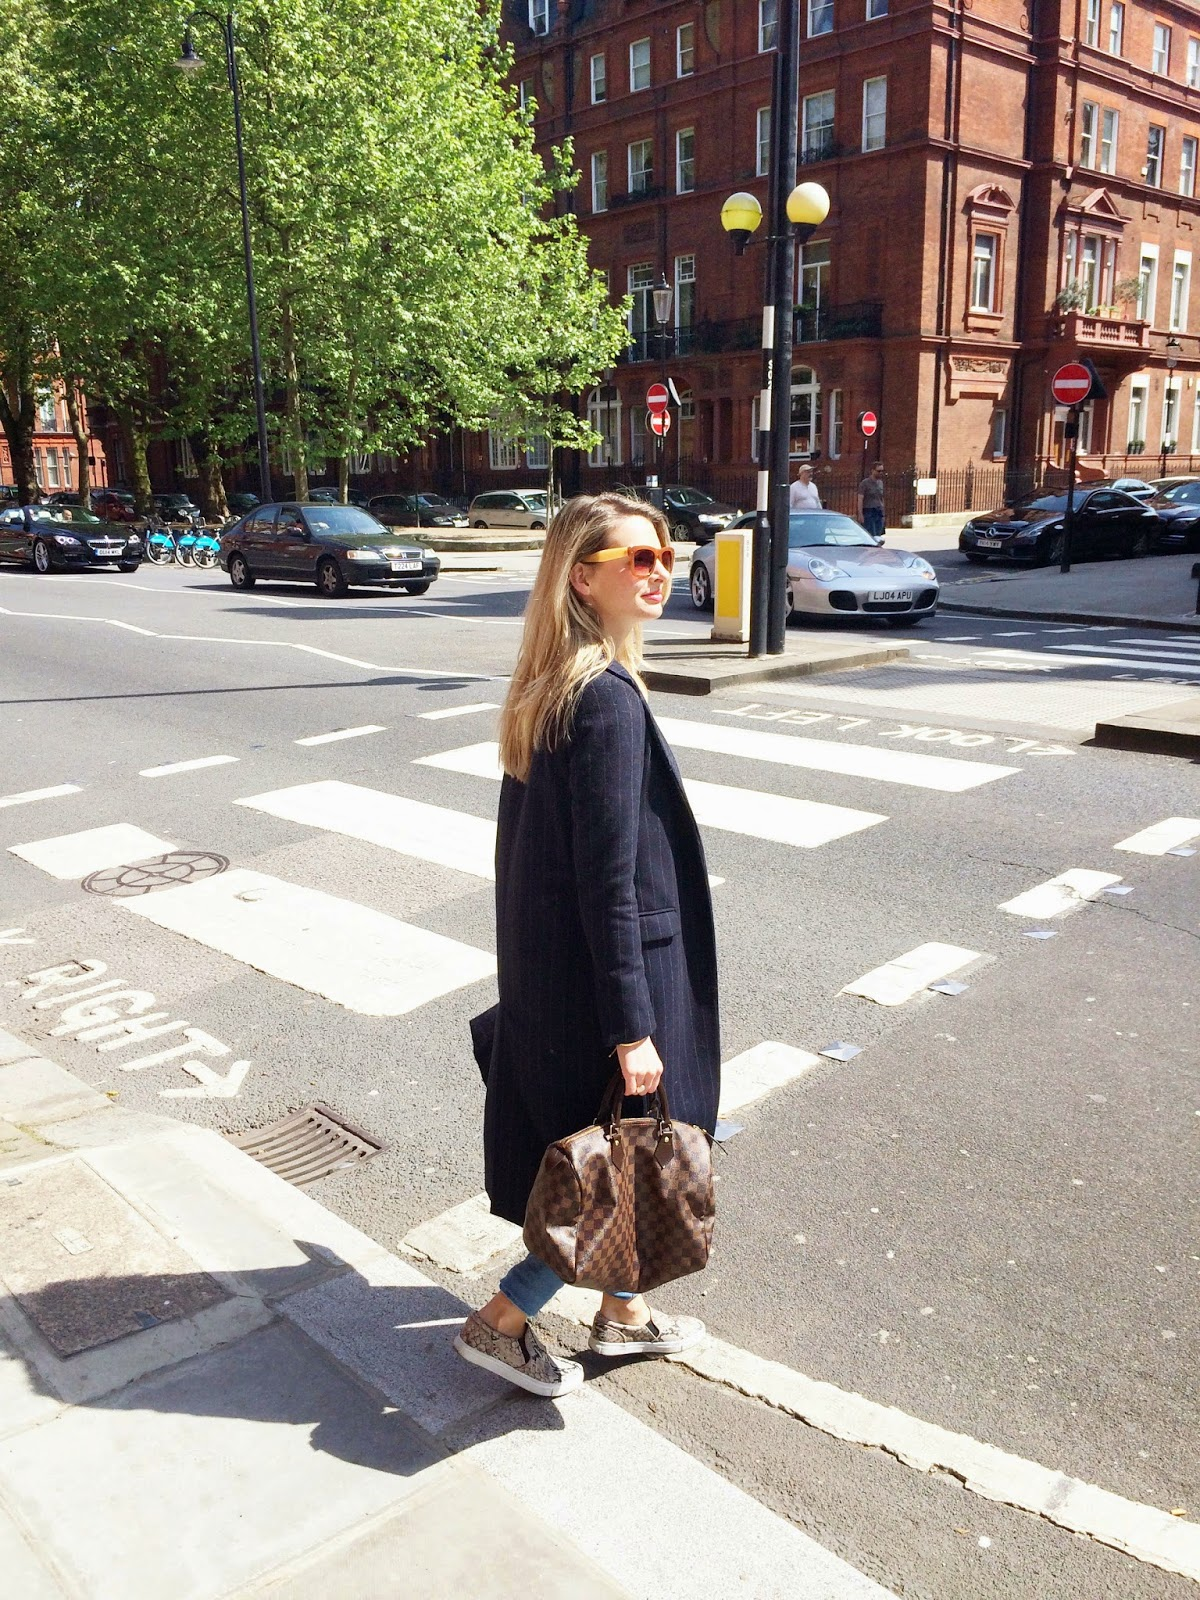 street style, louis vuitton speedy, lv speedy, long coat, pinstriped coat, duster coat, fashion blogger, london fashion blogger, chrissabella, look book, london look book